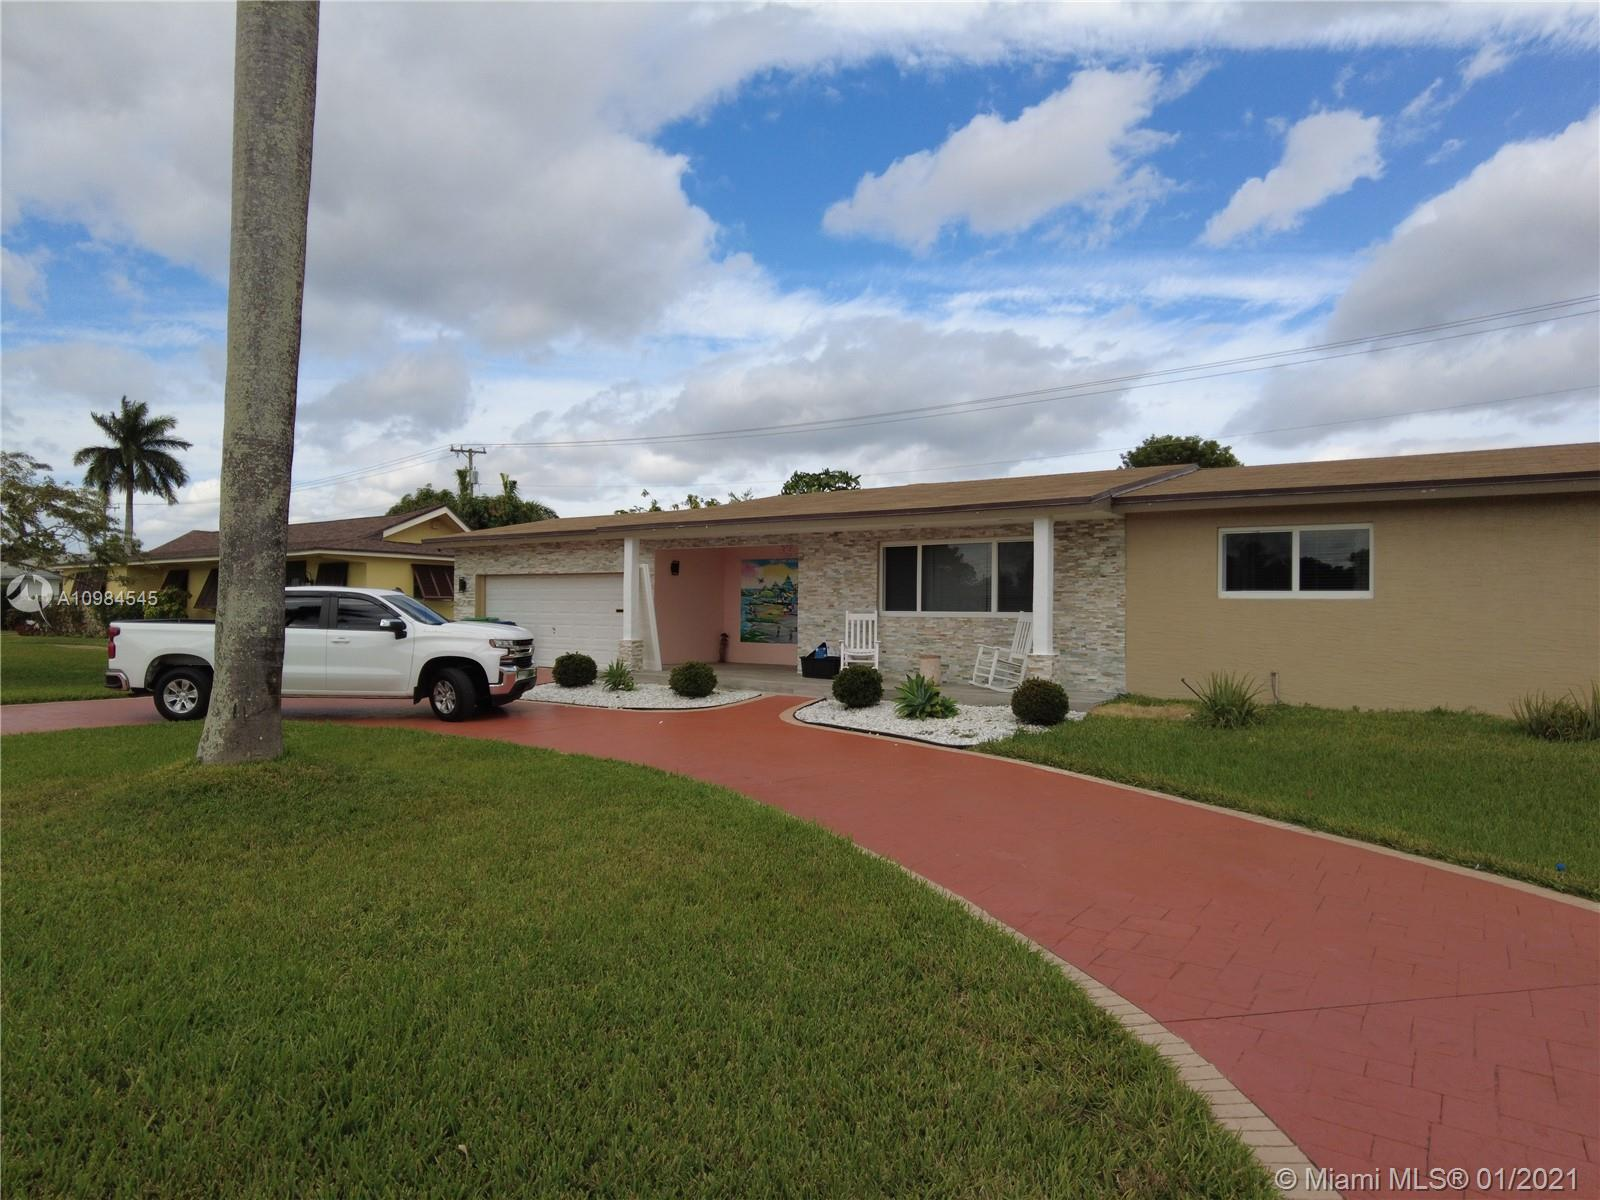 1365 NW 203rd Street, Miami Gardens, Florida 33169, 3 Bedrooms Bedrooms, ,2 BathroomsBathrooms,Residential,For Sale,1365 NW 203rd Street,A10984545